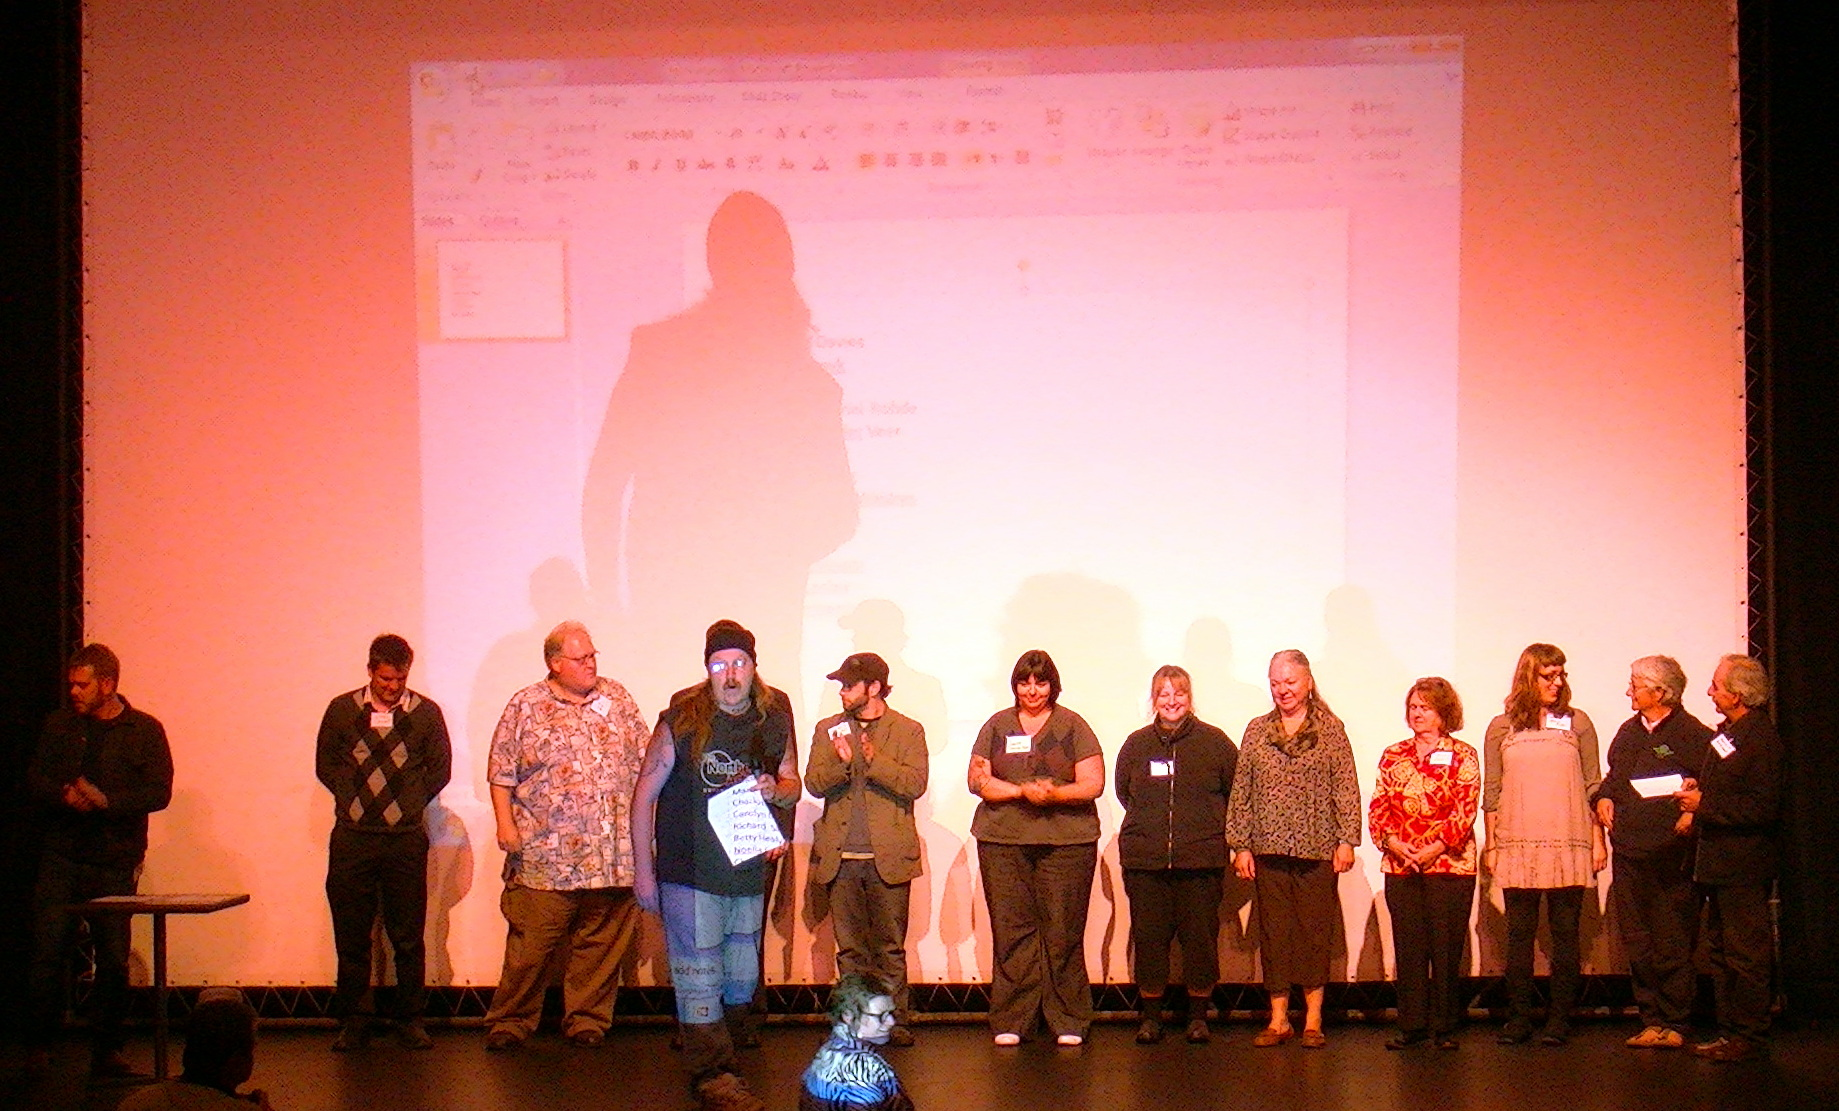 Cornwall Ontario Creates an Art Council at the Aultsville Theatre – September 23, 2012